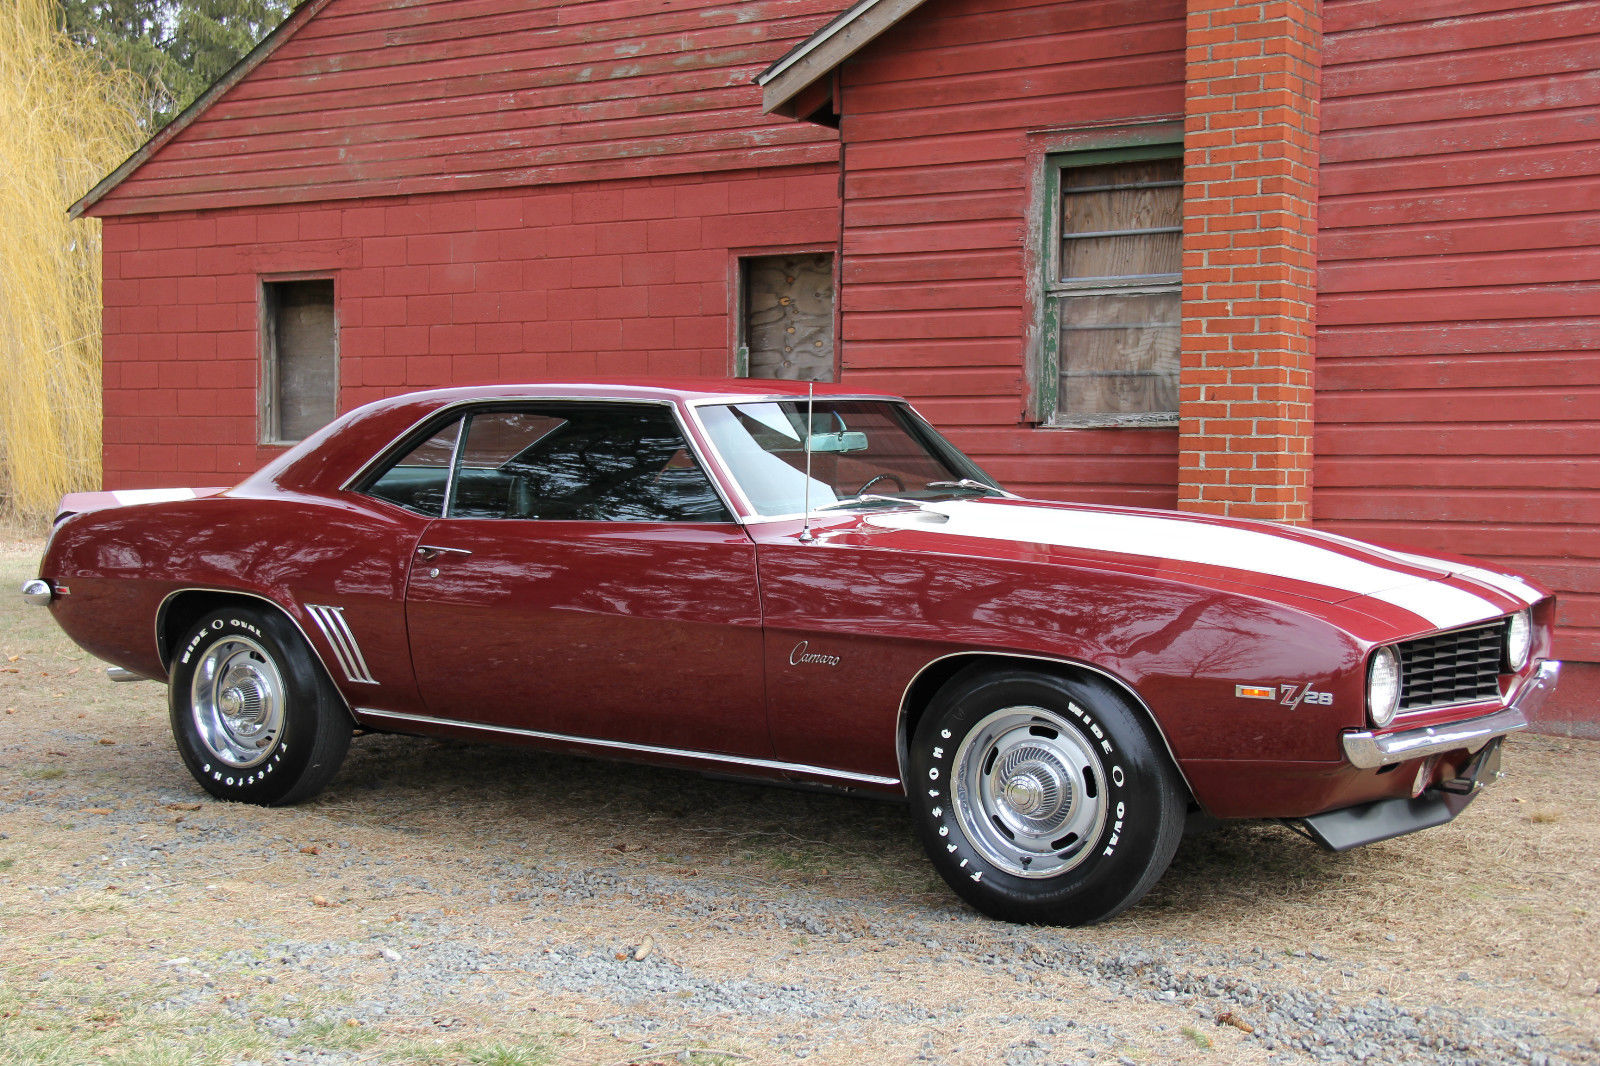 1969 Chevrolet Camaro Z 28 Muscle Car